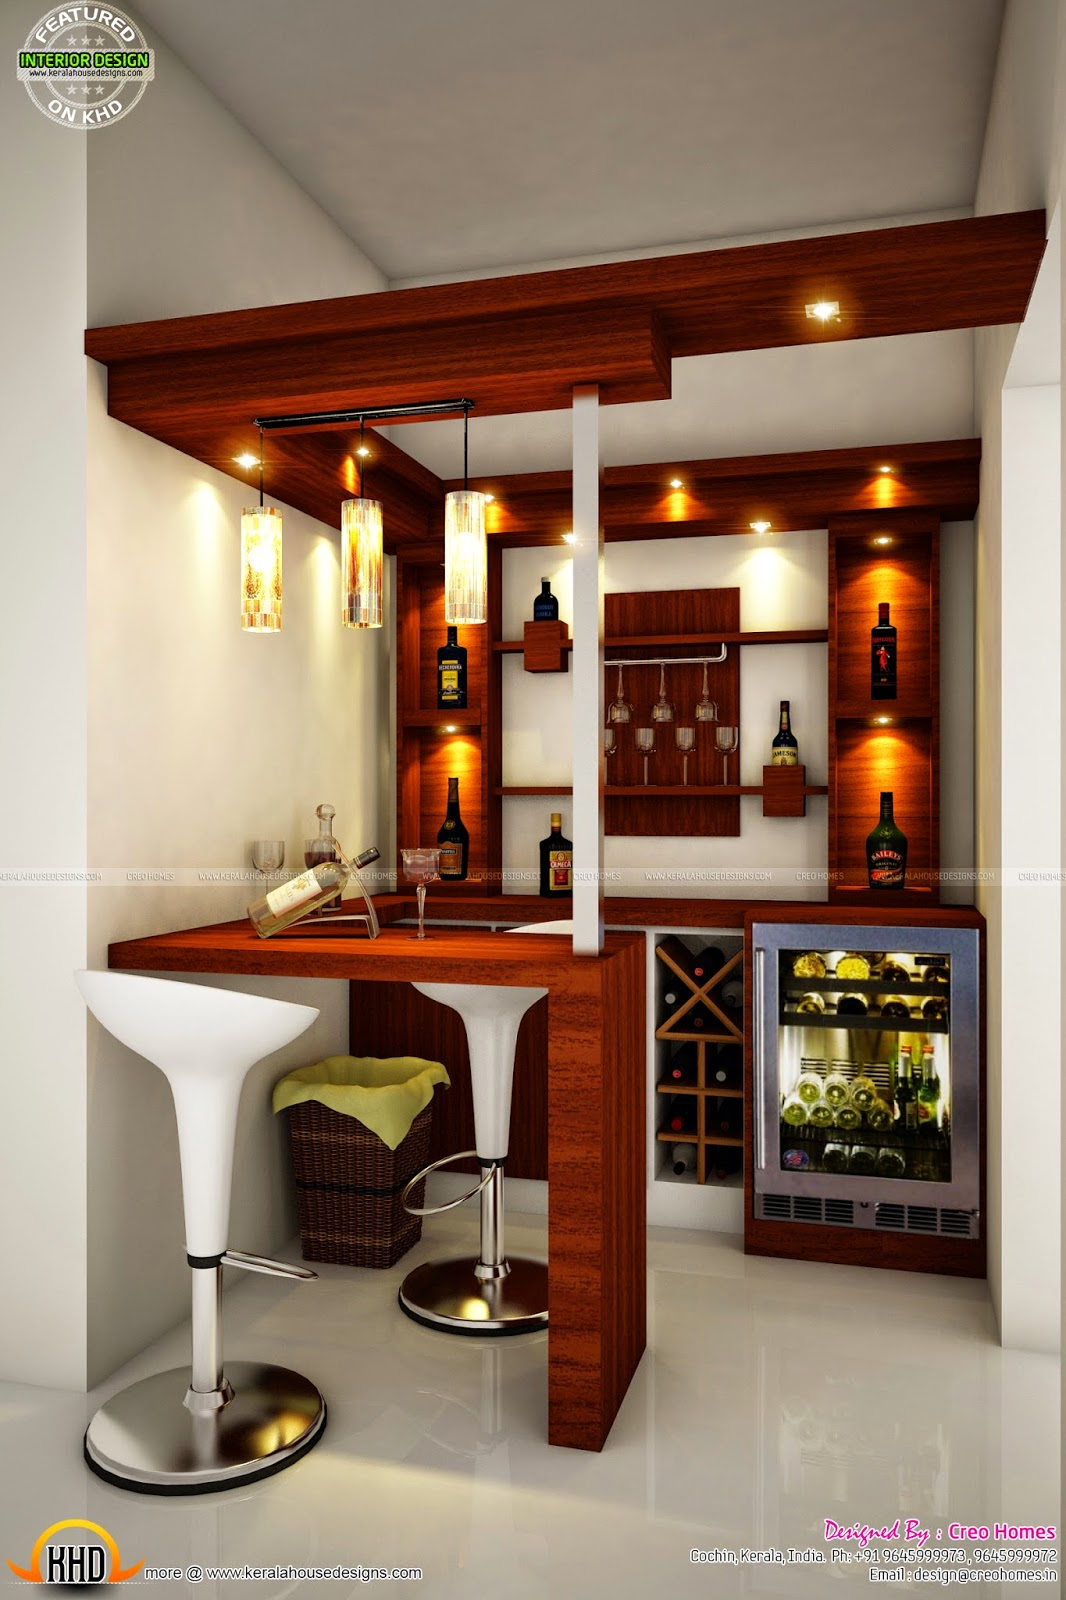 Total home interior solutions by Creo Homes - Kerala home ...